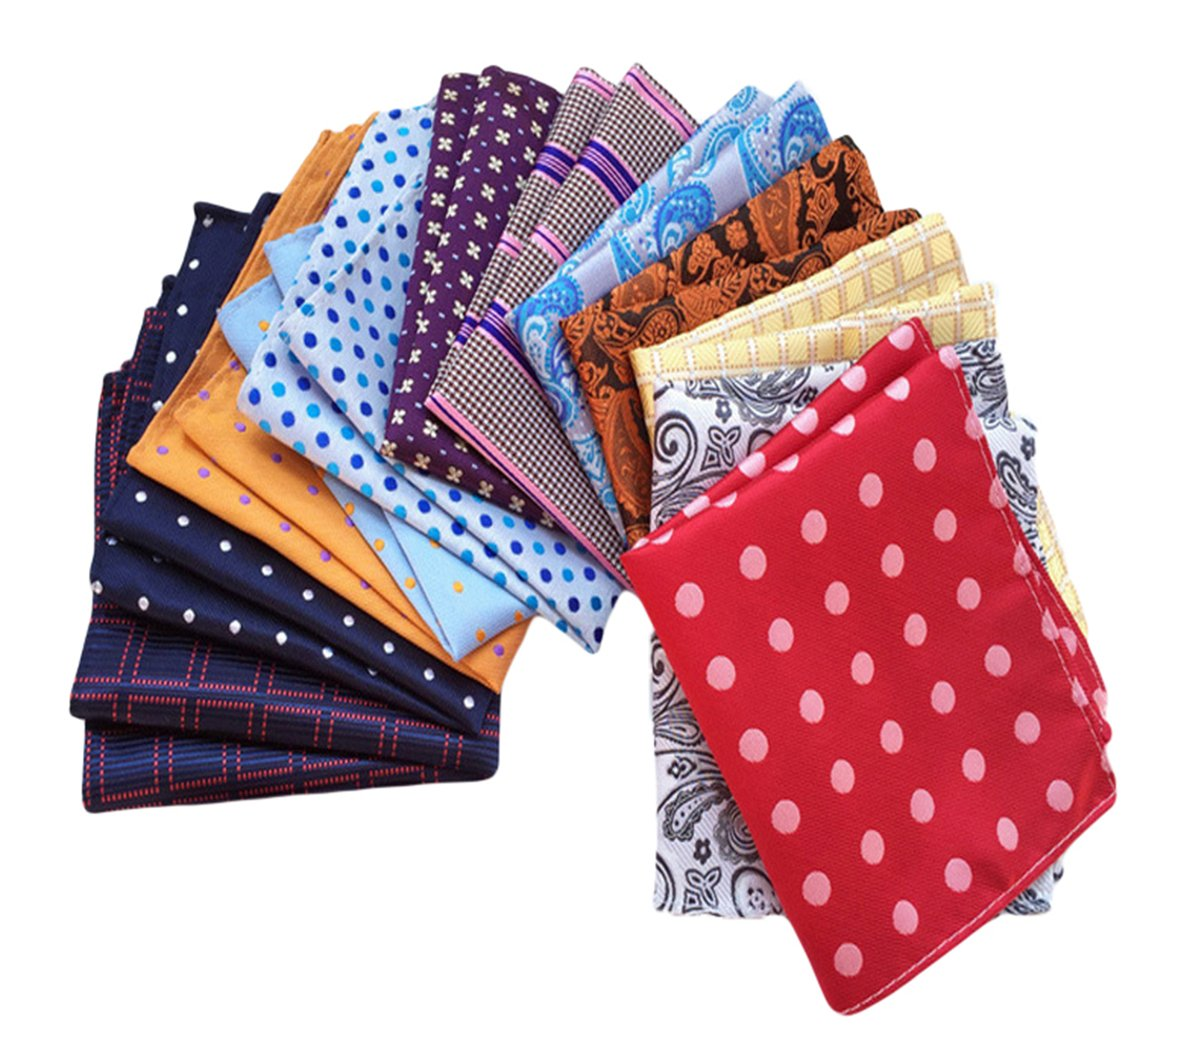 MENDENG Men's 12 Pack Paisley Plaid Polka Dot Handkerchief Vintage Pocket Square ENG0840